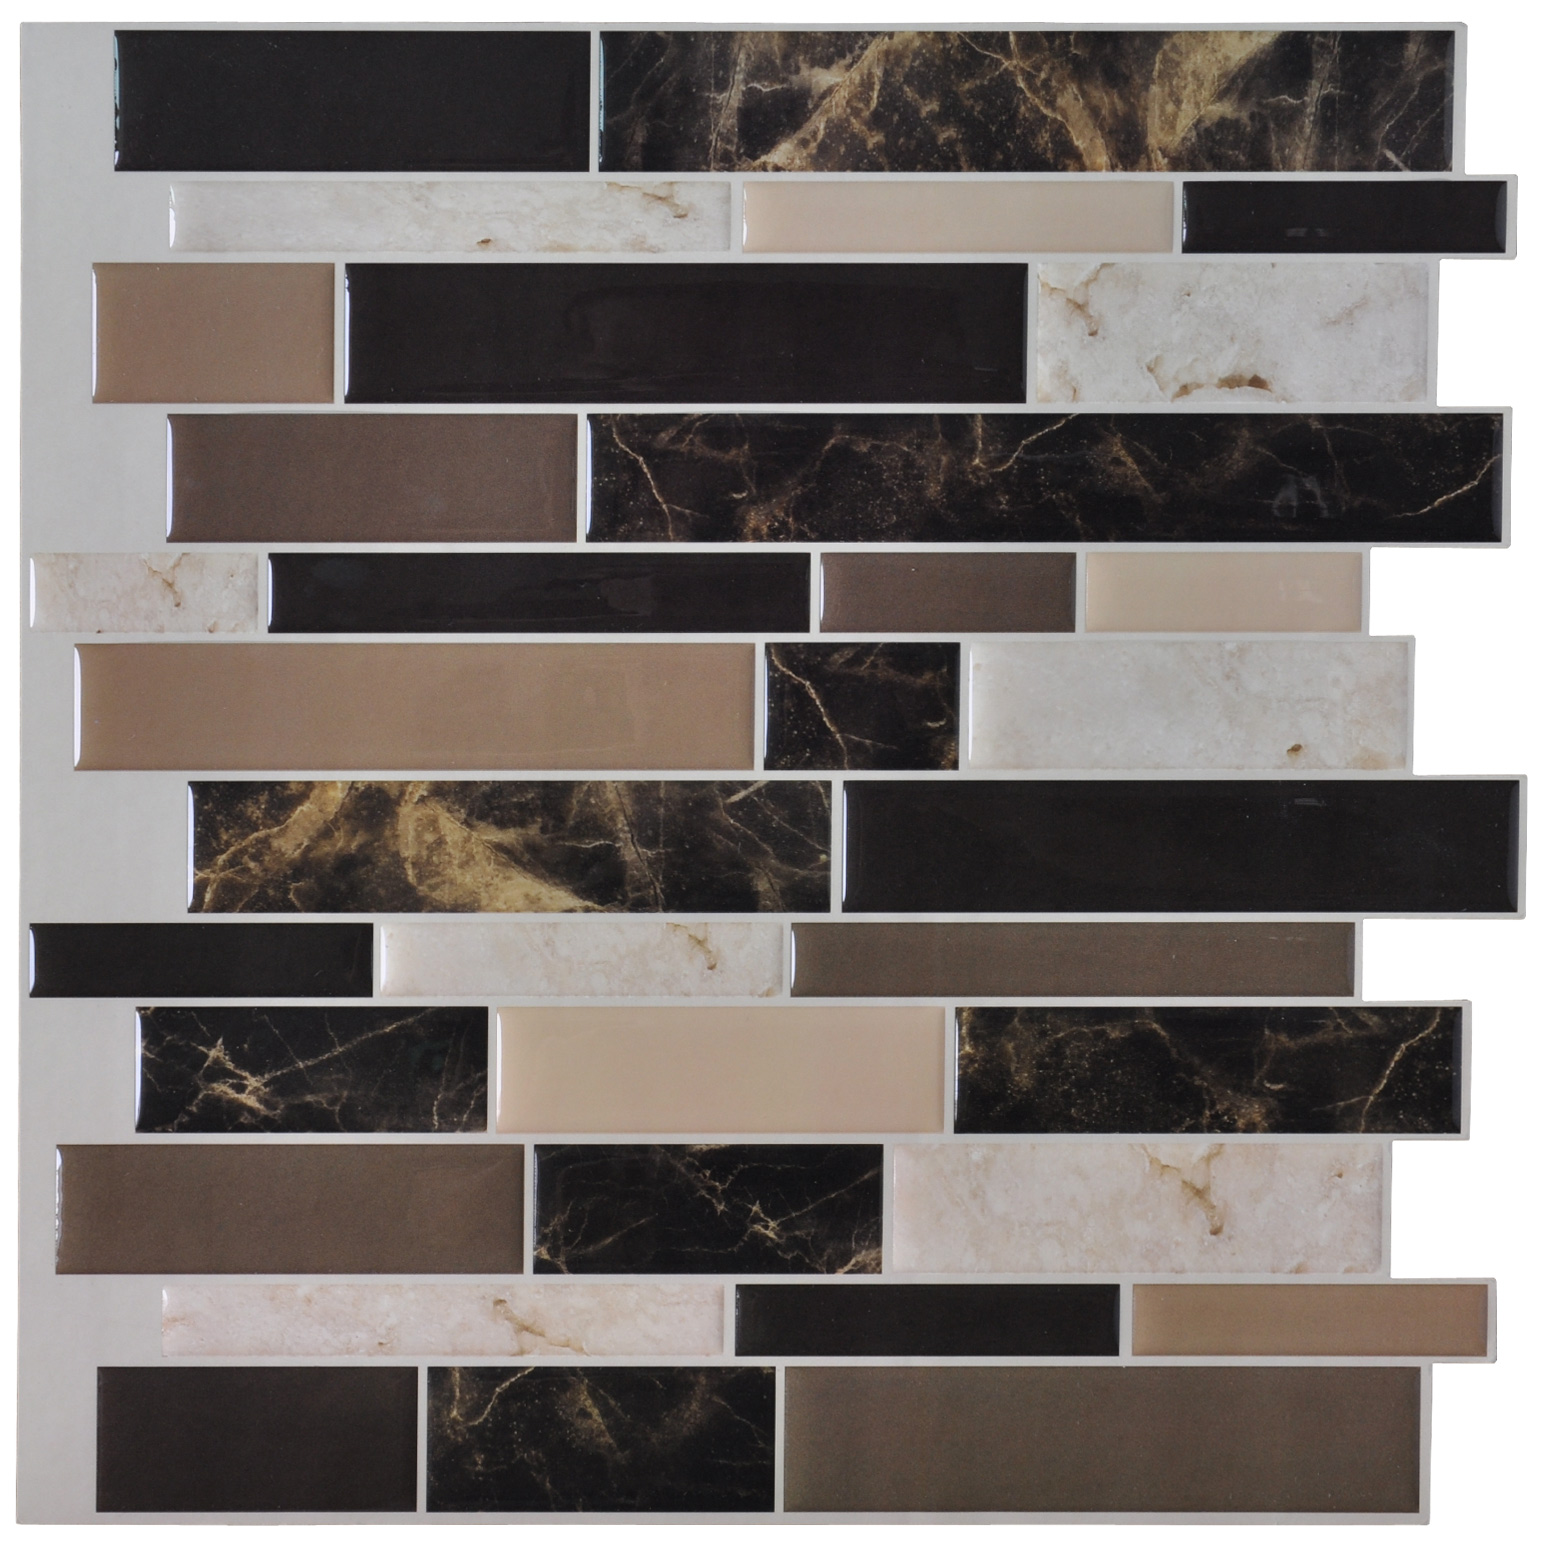 "Self Adhesive Wall Tile Peel and Stick Backsplash for Kitchen(12""x12"" 6 sheets)"